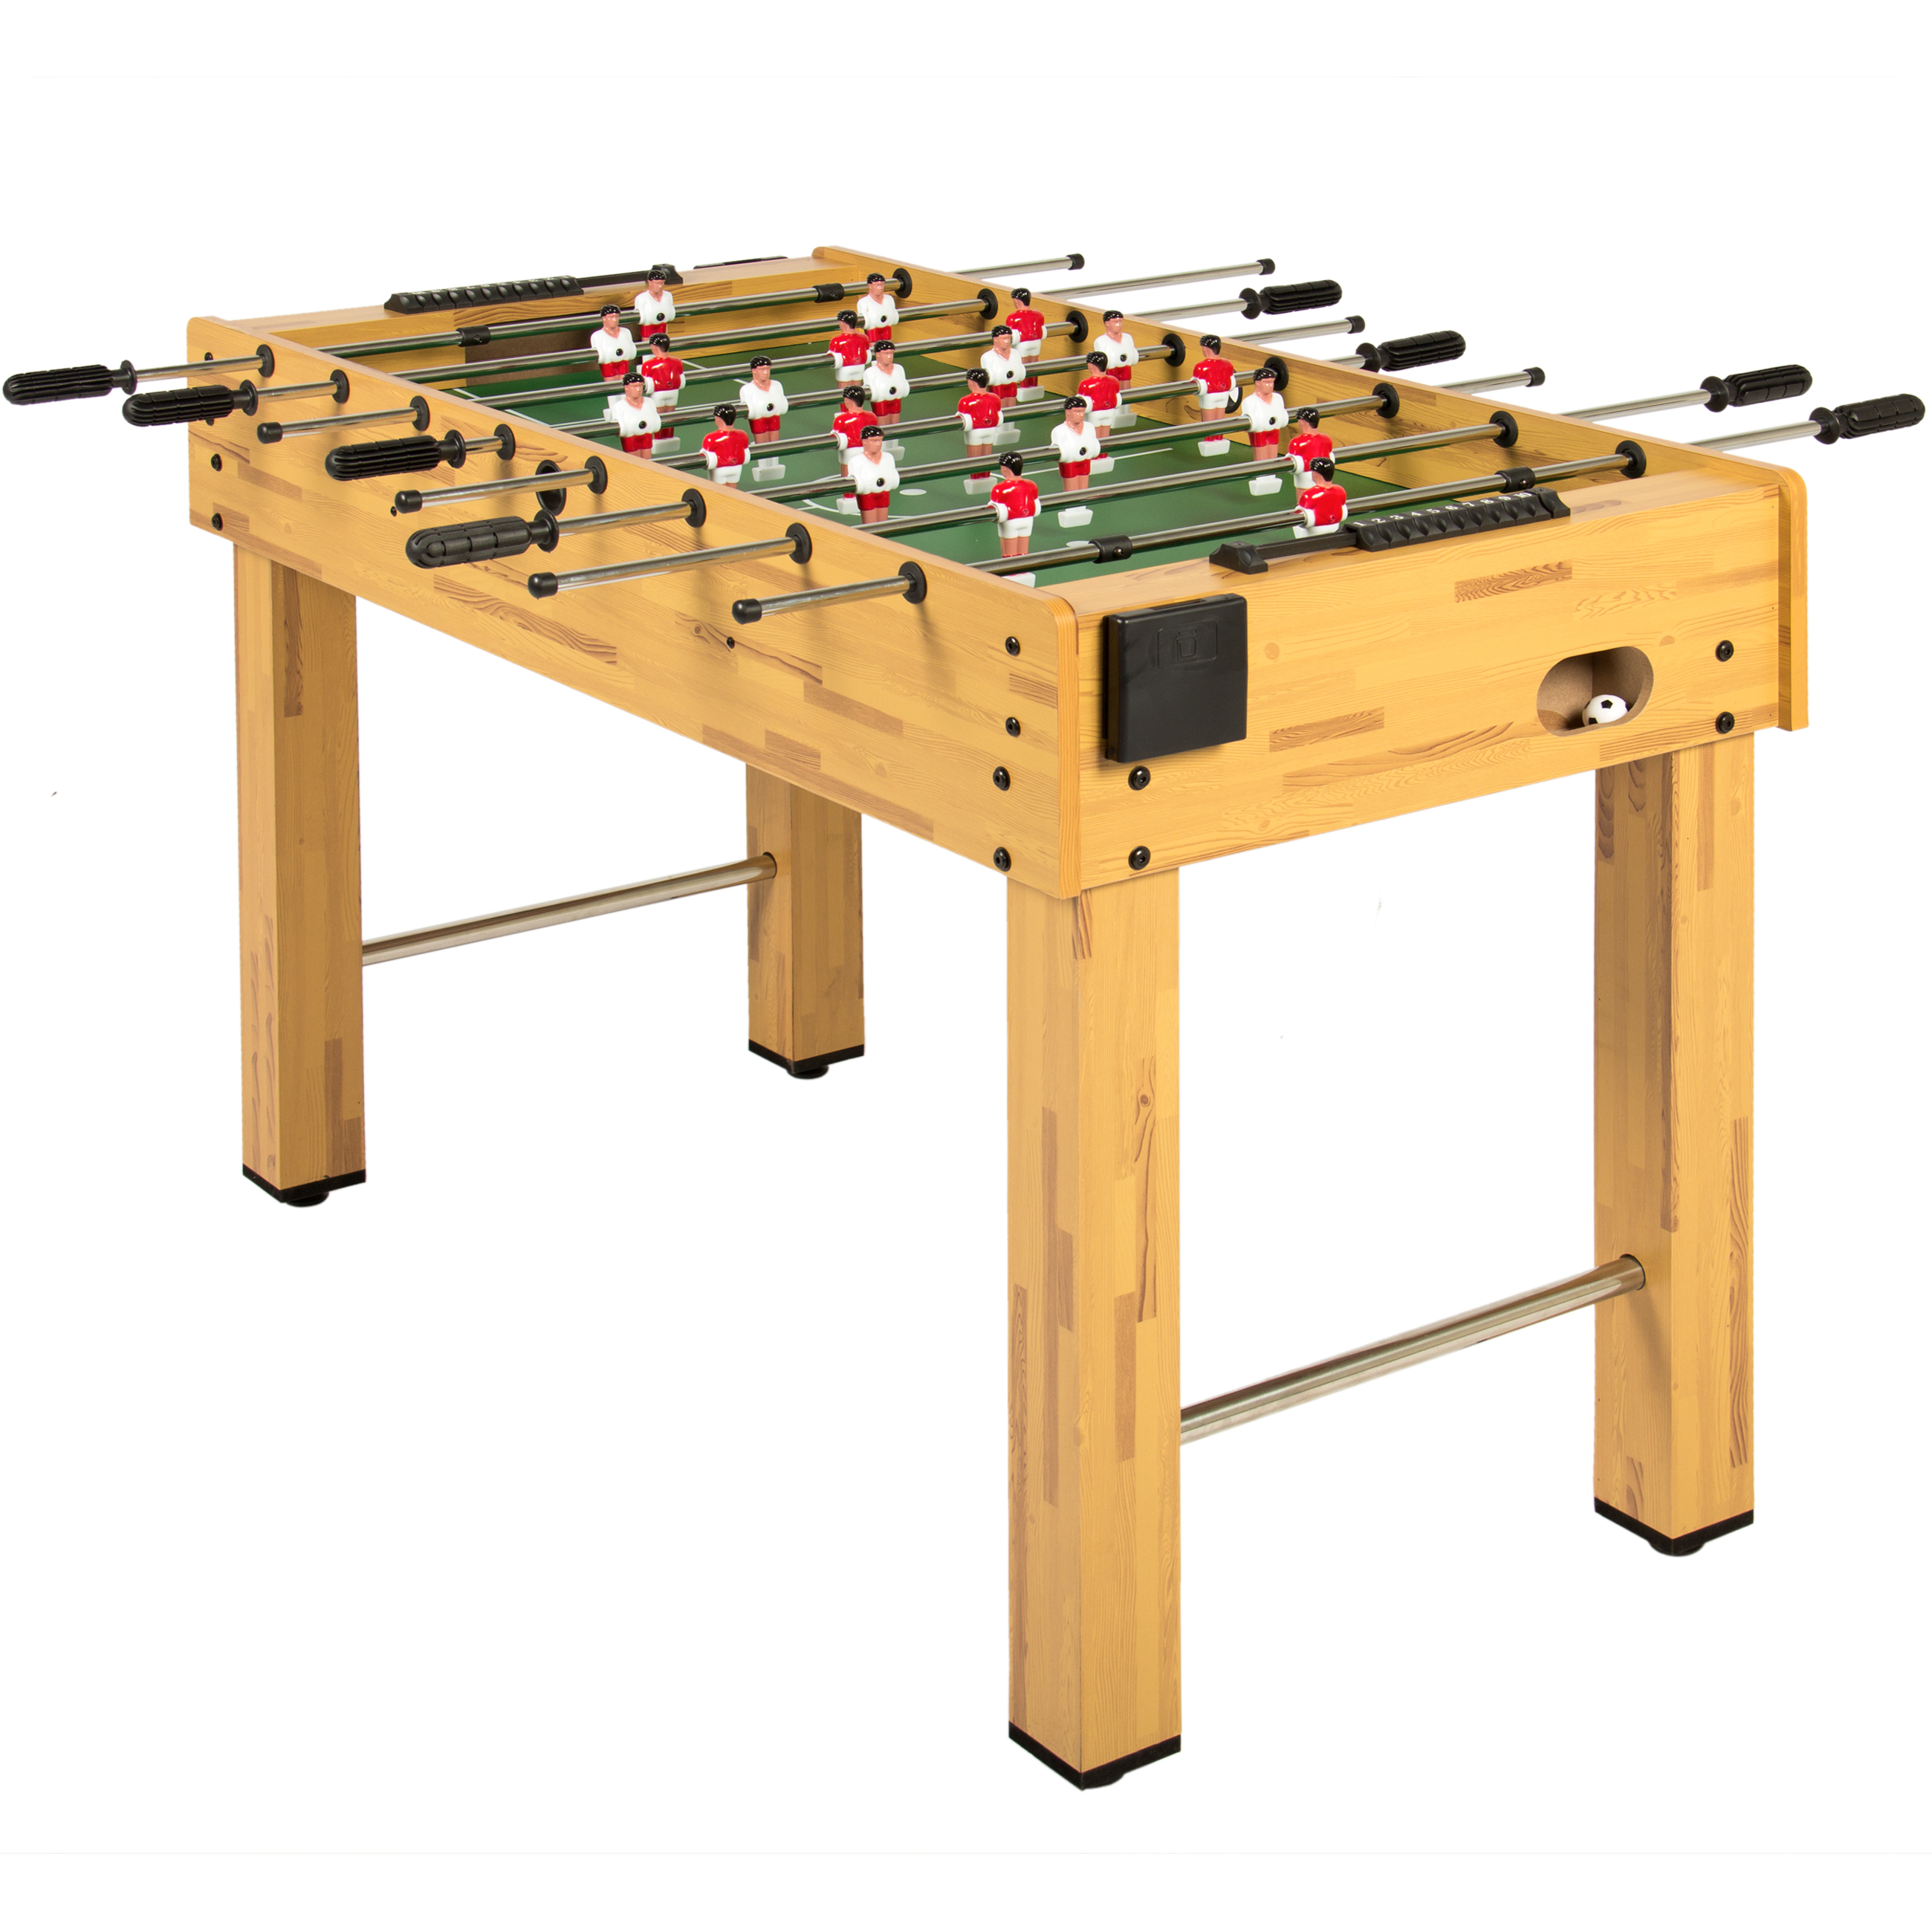 best choice products 48in competition sized soccer foosball table in brown with 2 balls 2 cup holders for home game room arcade